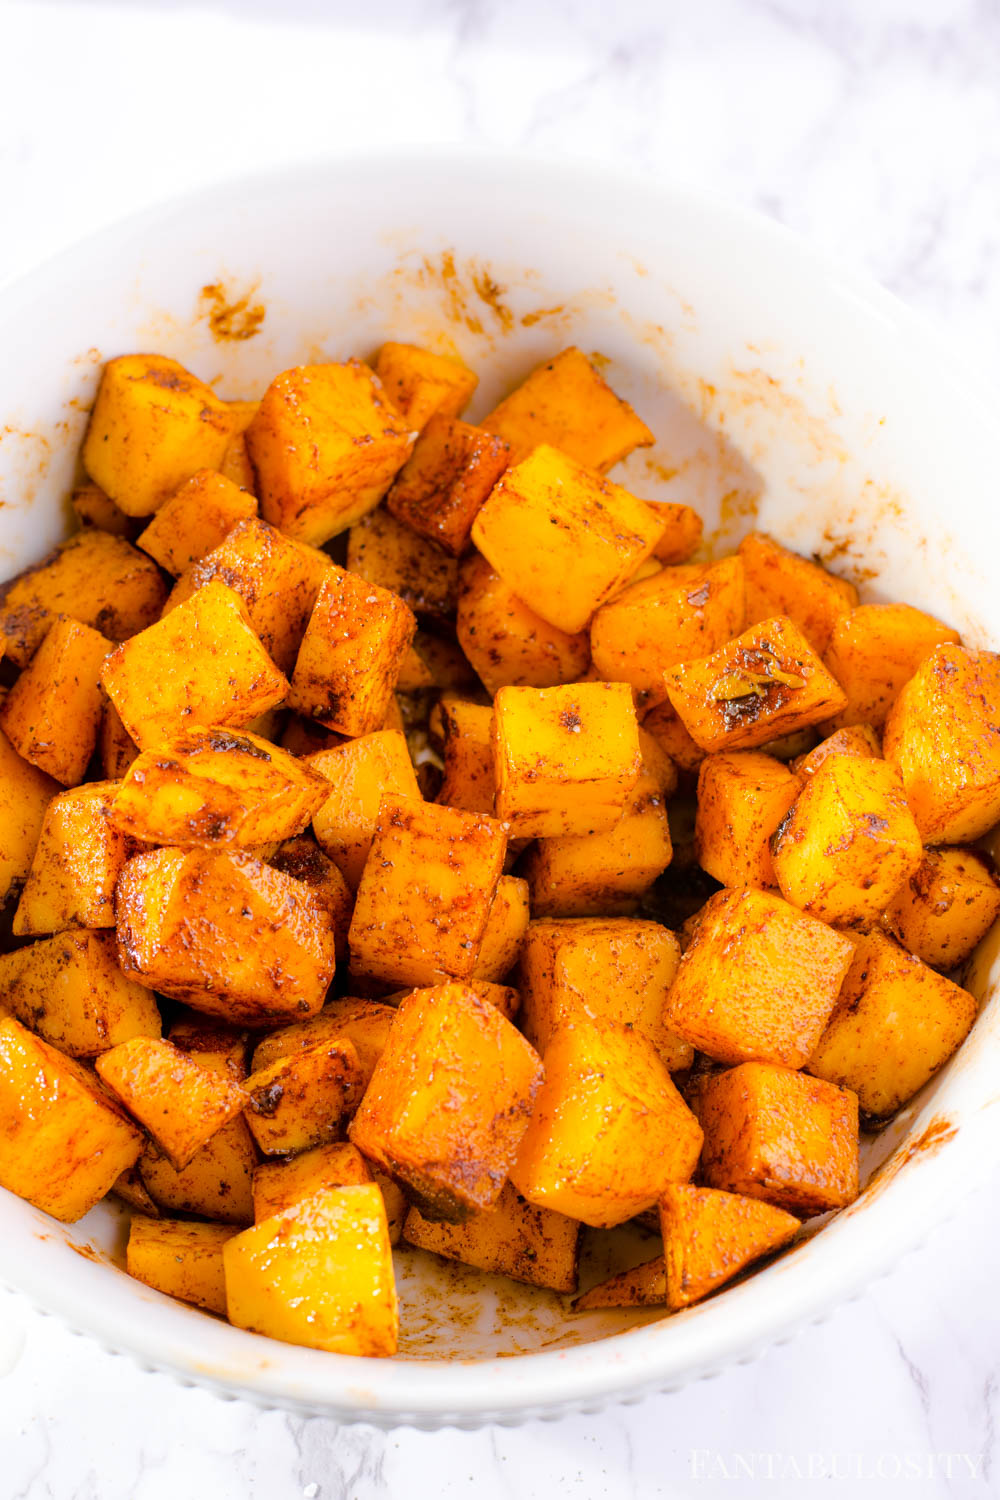 Stir butternut squash is evenly covered with spices